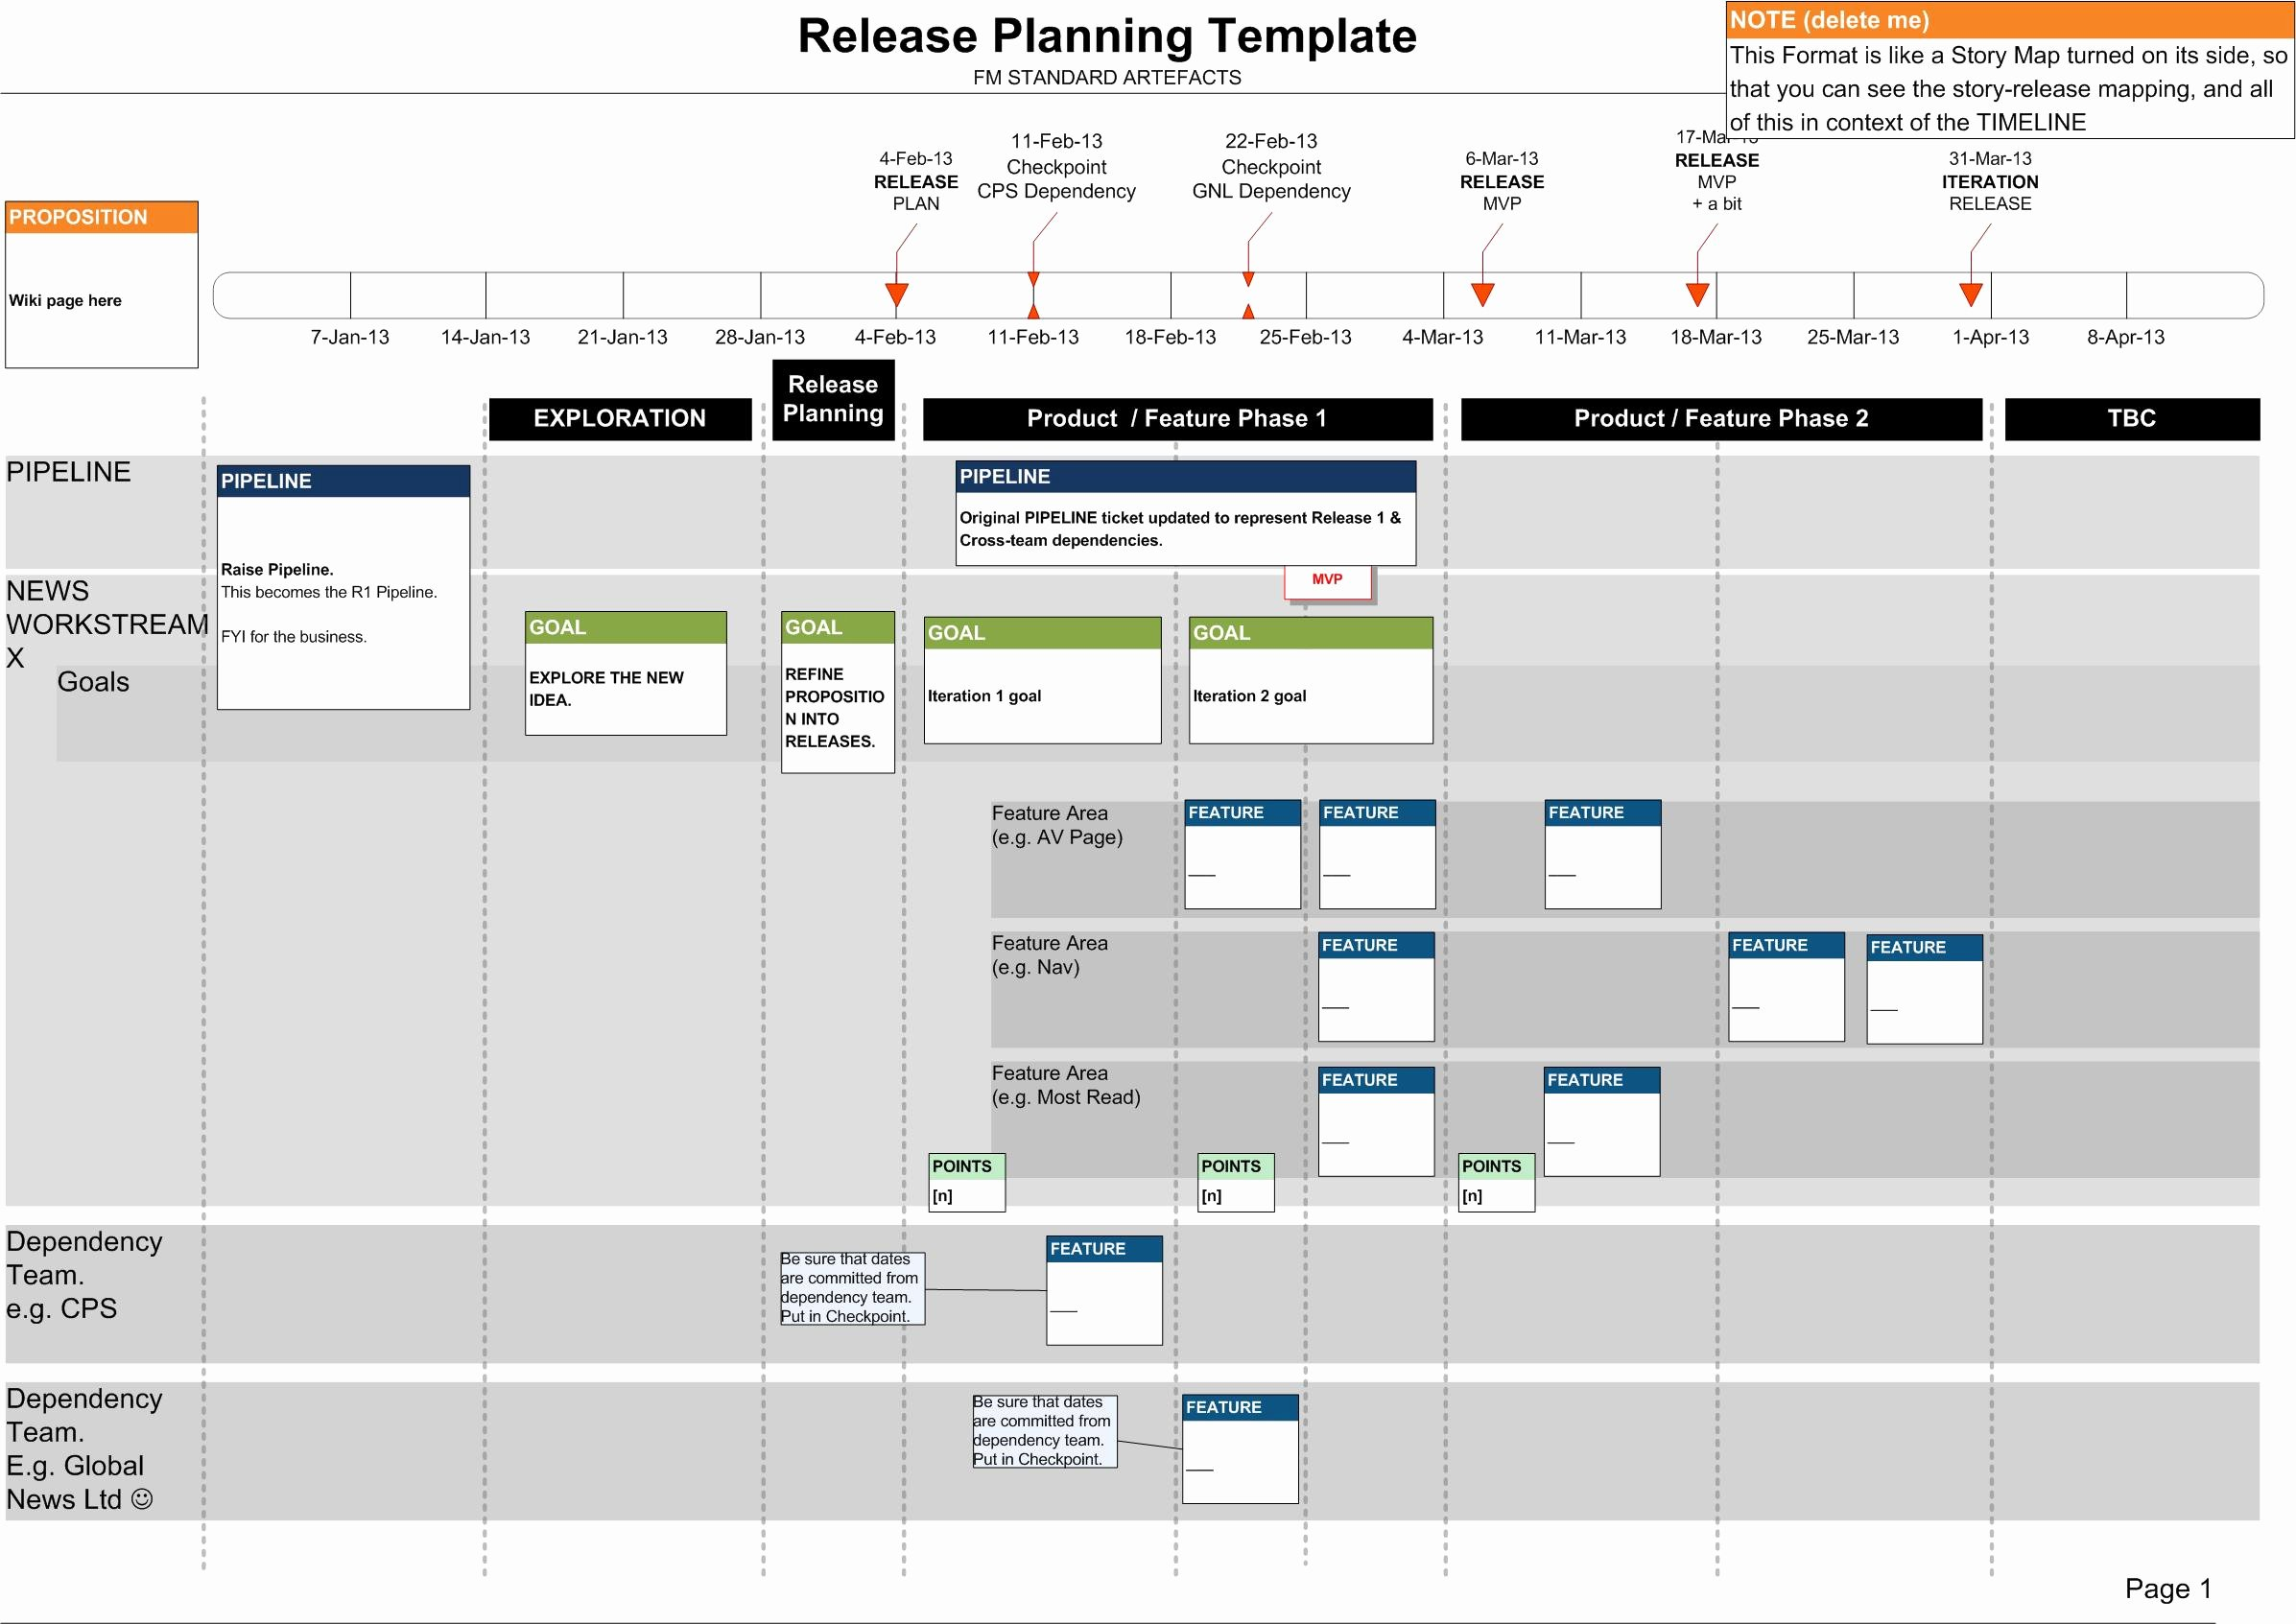 Band Rehearsal Plan Template Fresh Launching A New Bbc News Lean & Agile Delivery Process